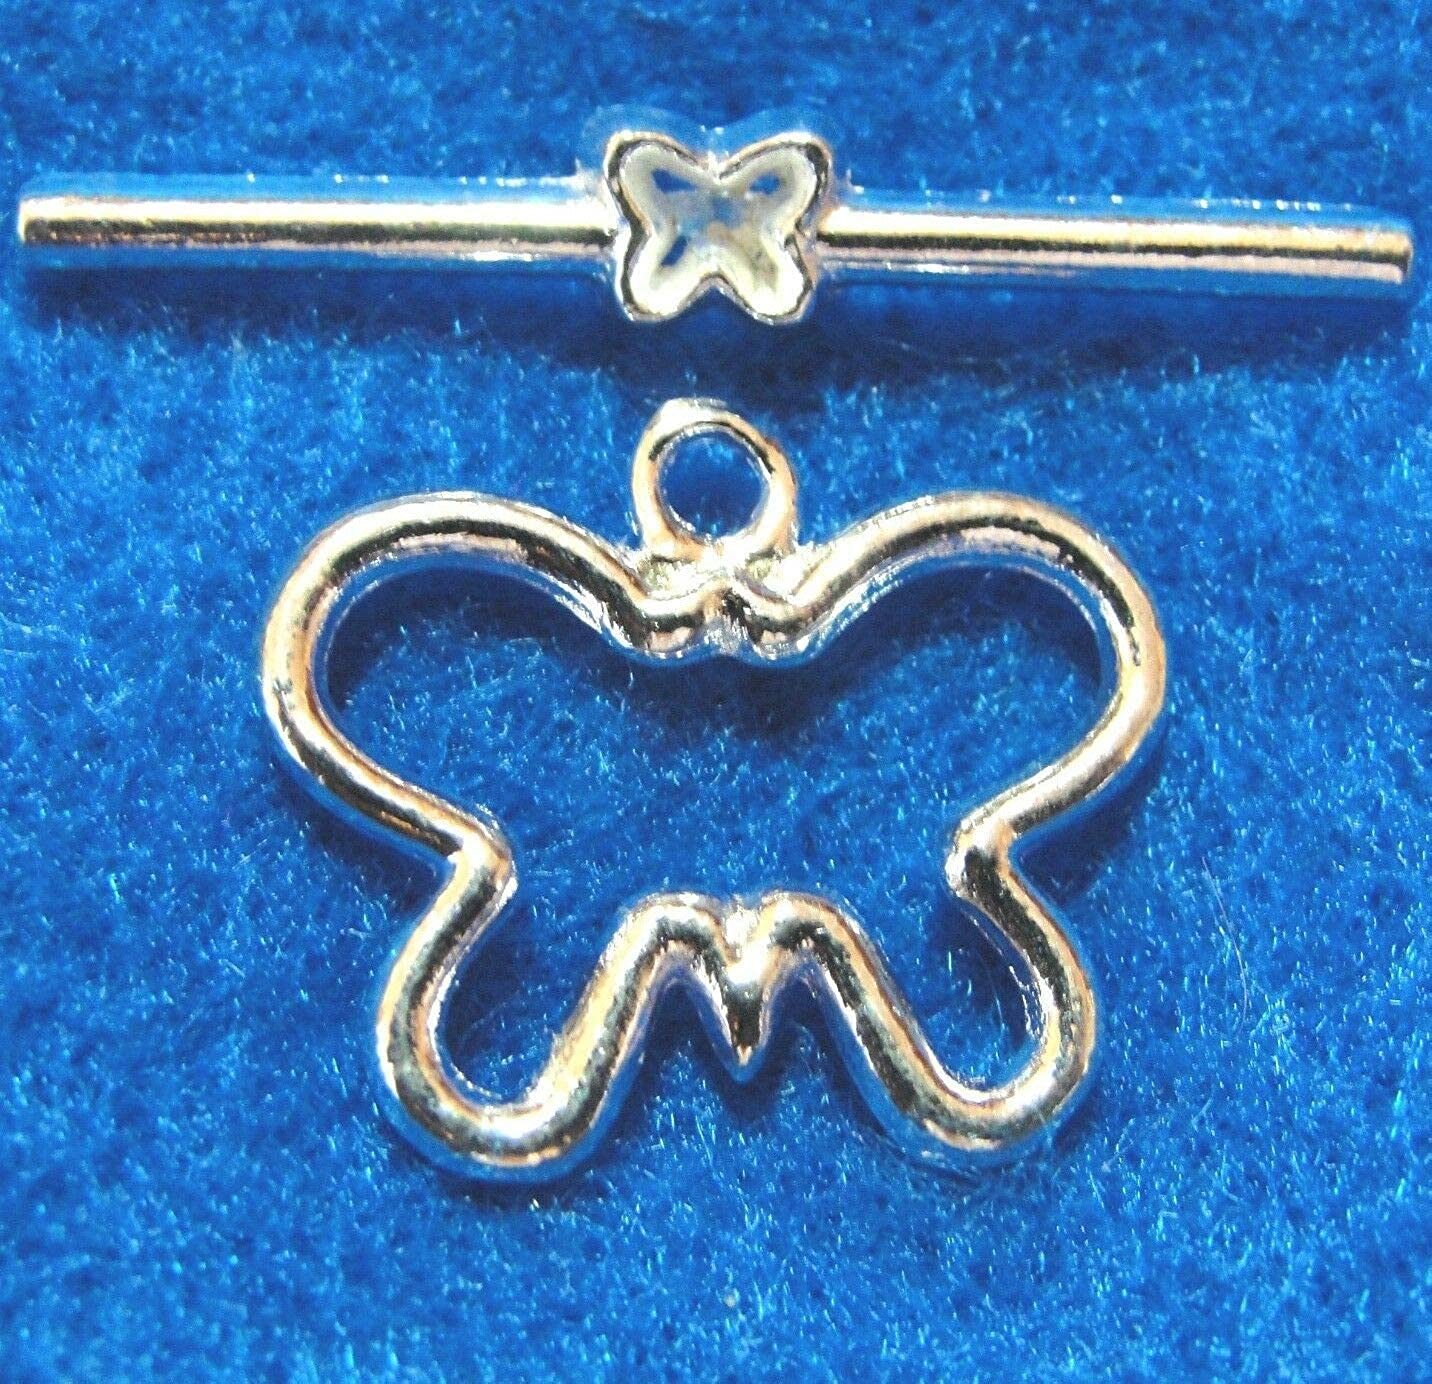 overseas 50Sets WHOLESALE Silver-Plated BUTTERFLY Dedication C Tibetan Clasps Toggle